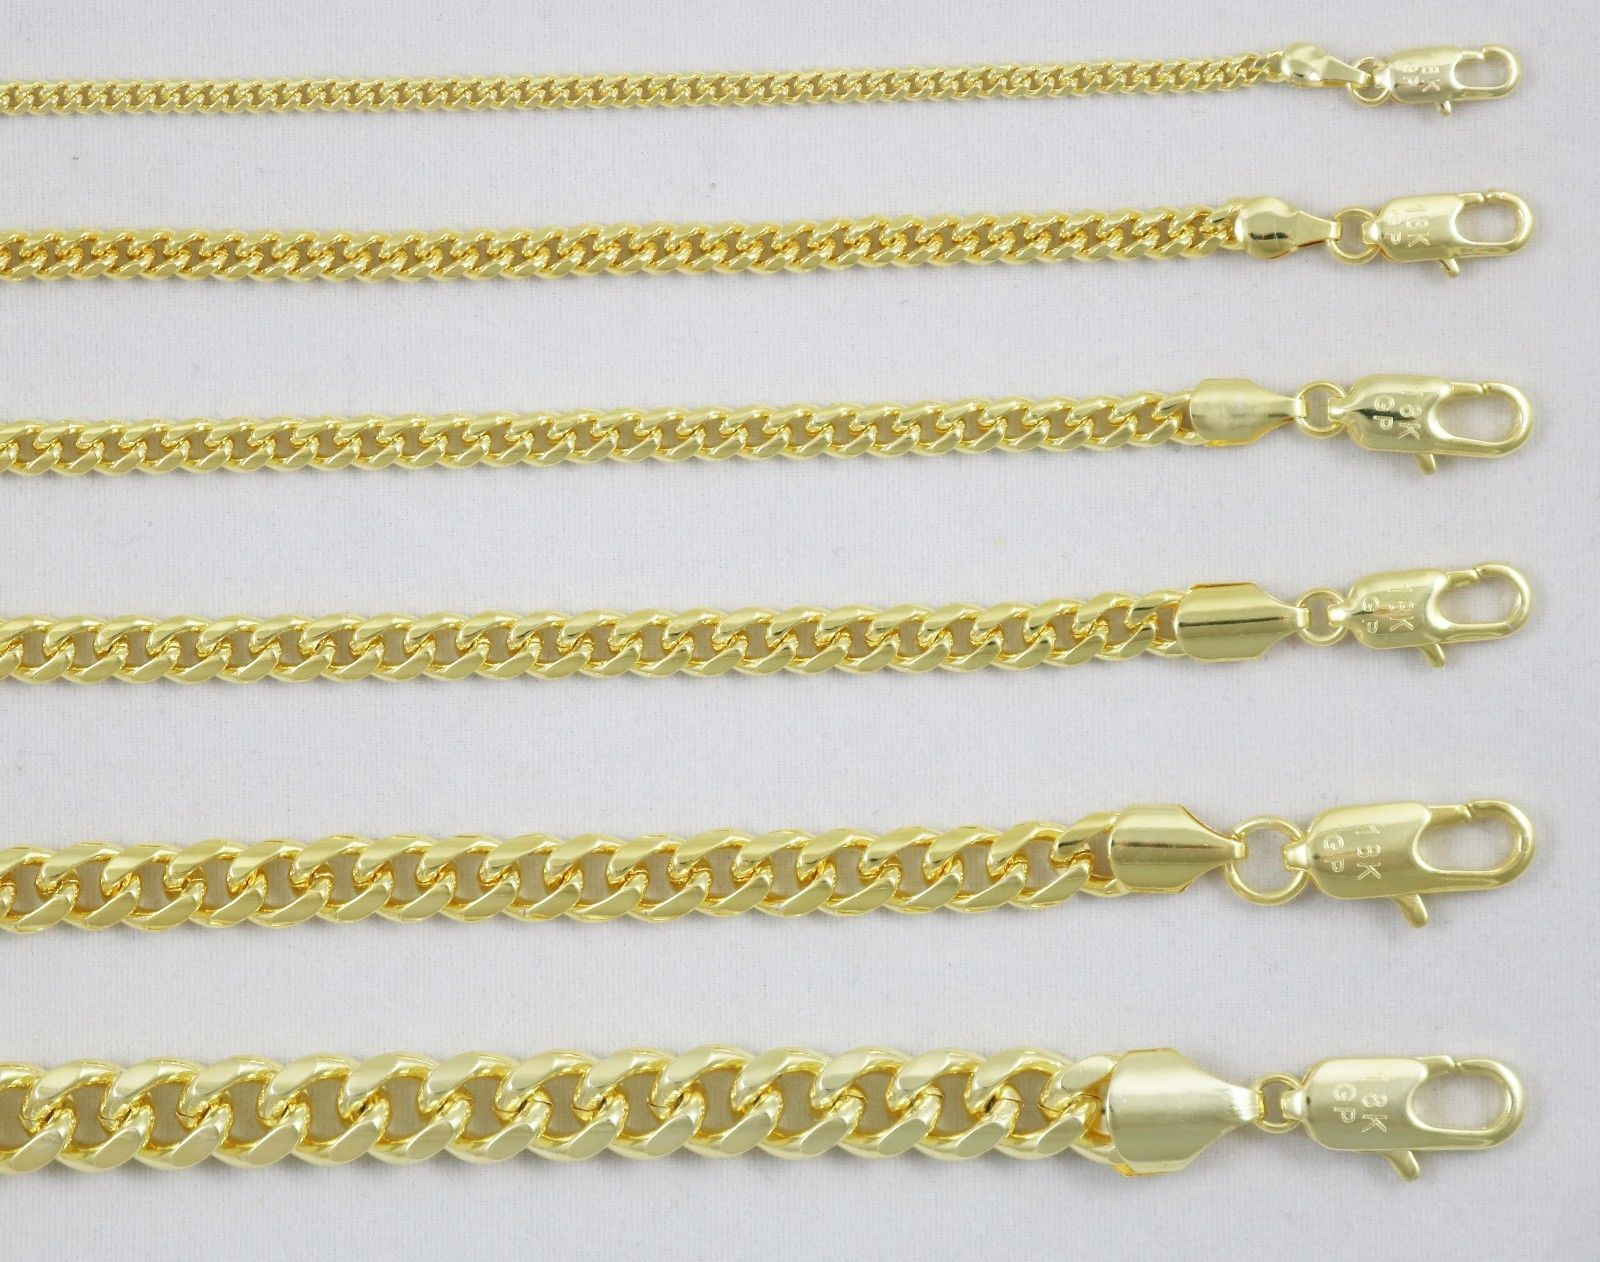 5 99 18k Gold Plated Curb Cuban Link Chain Necklace Bracelet 3mm 4mm 5mm 6mm 8mm 10mm Cuban Link Chain Necklaces Brass Chain Necklace Chain Necklace Womens